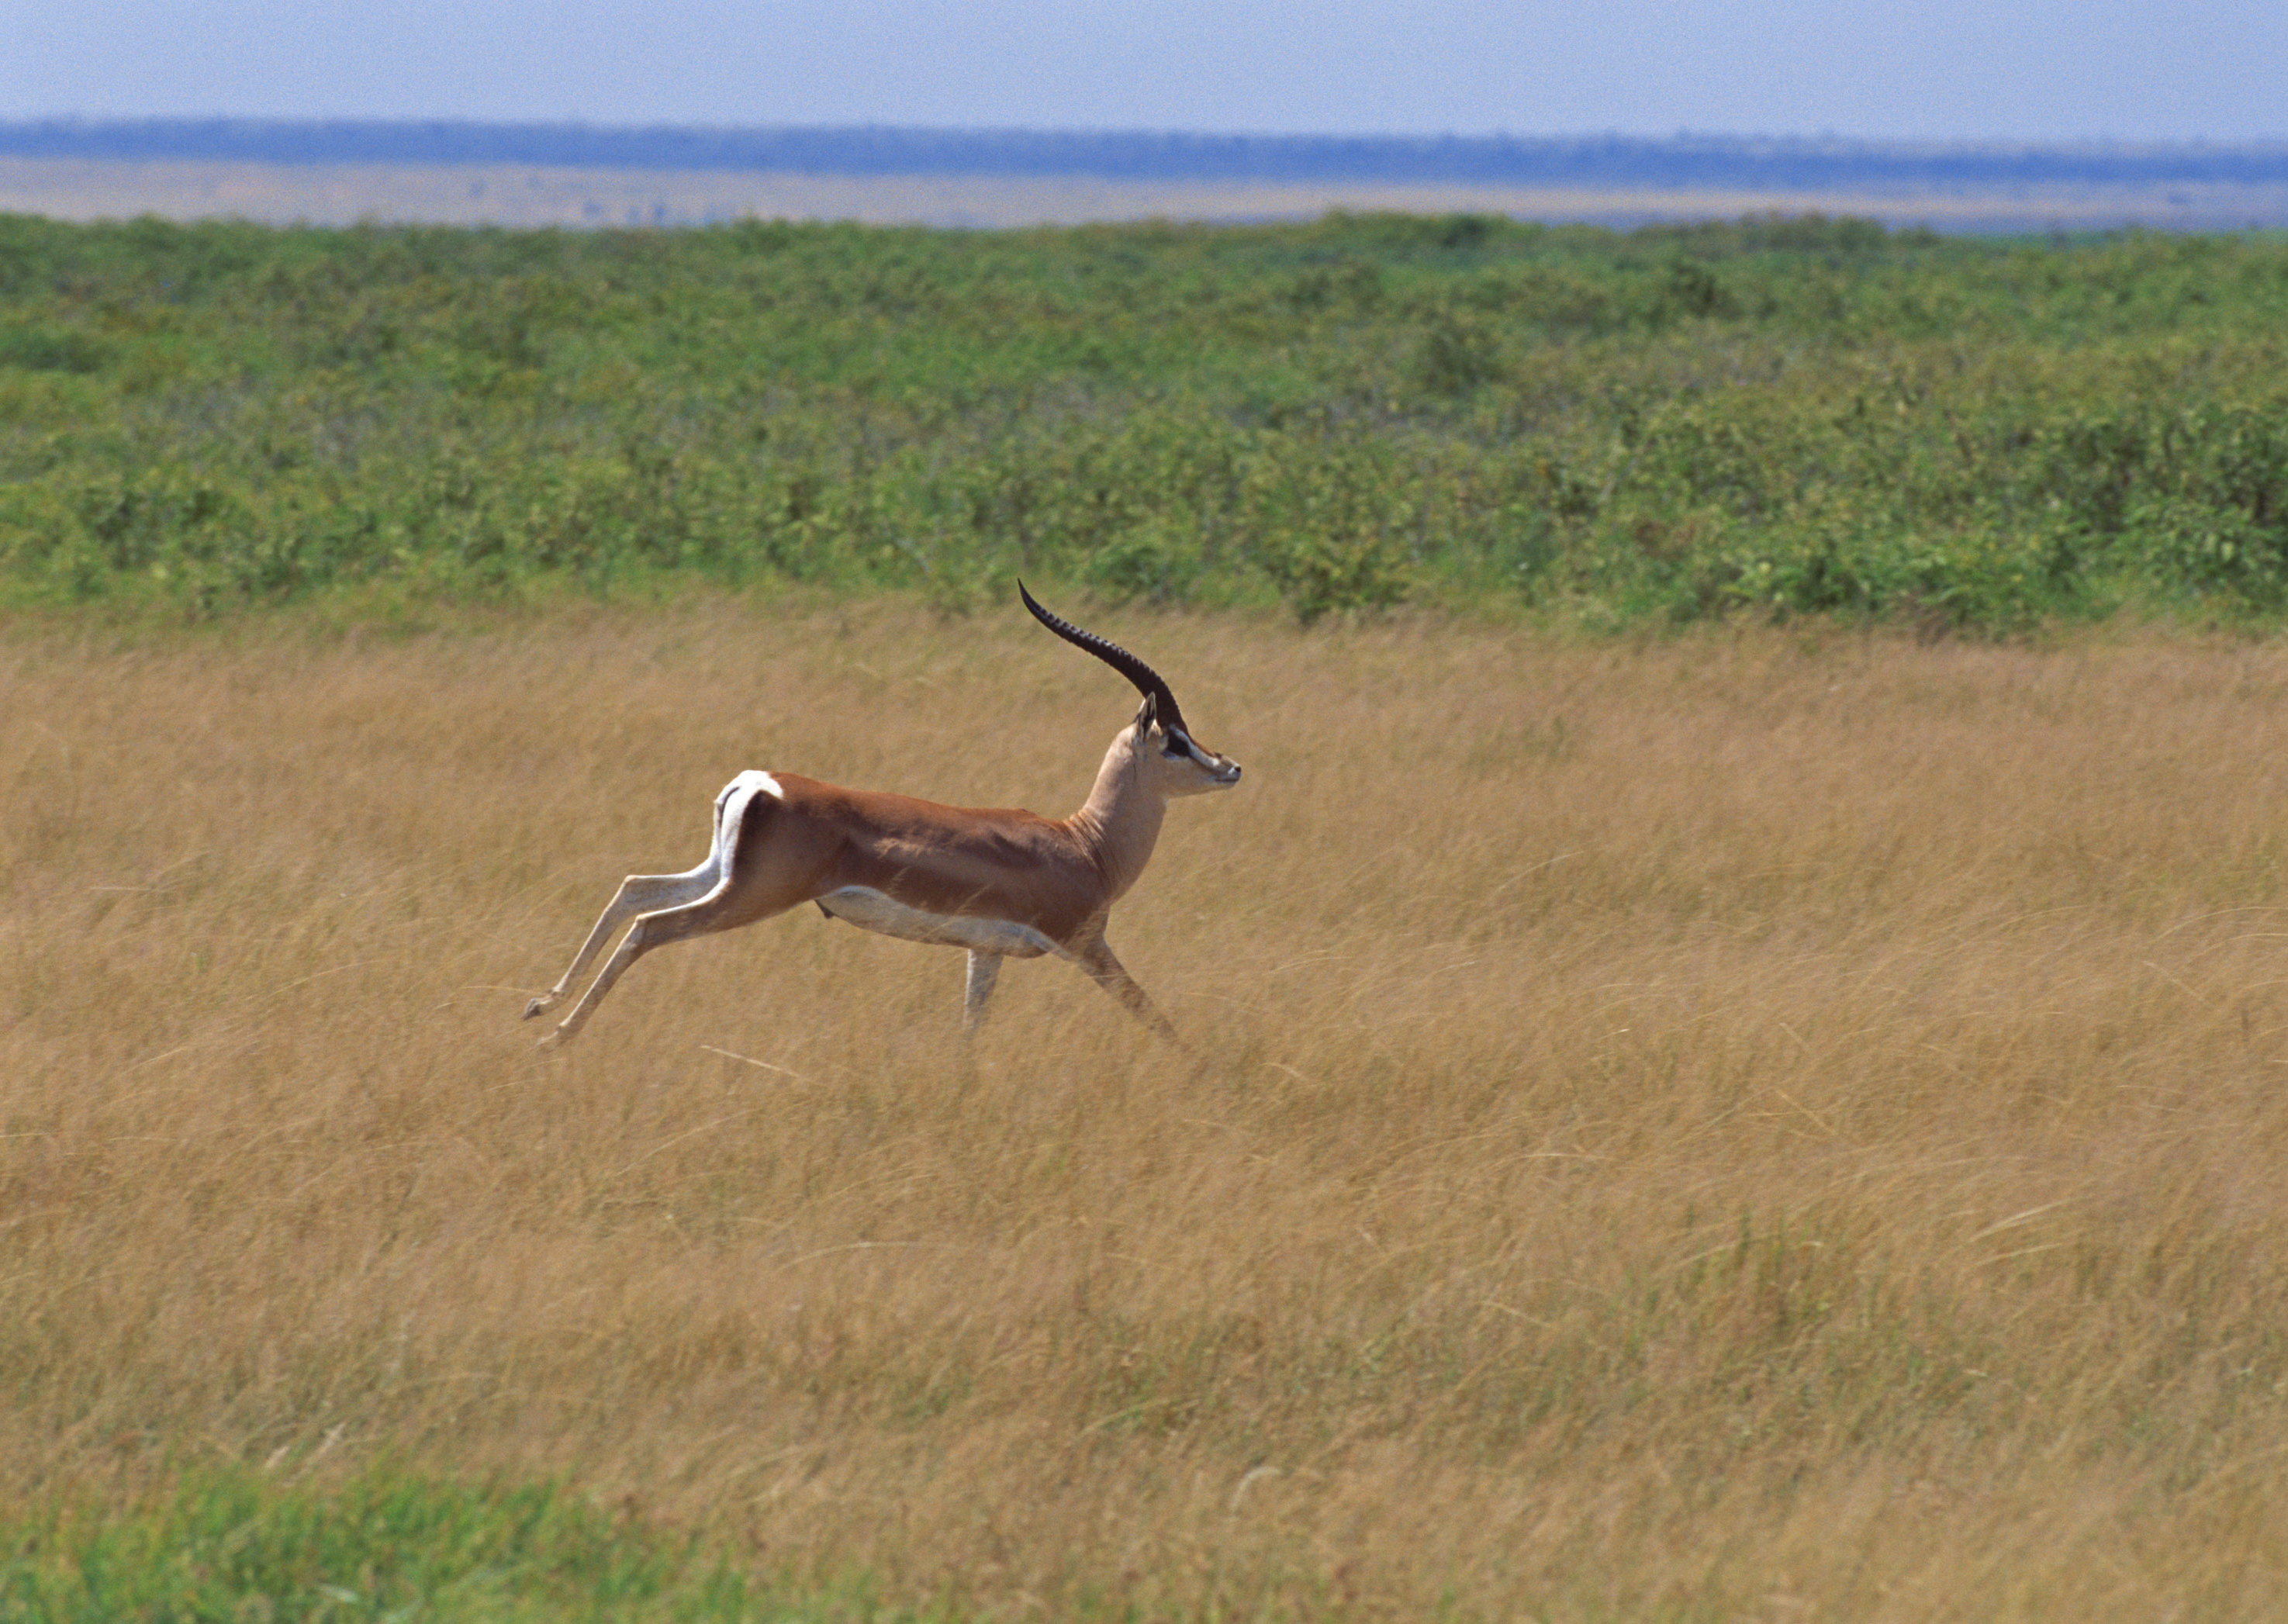 Running Antelope Wallpaper.